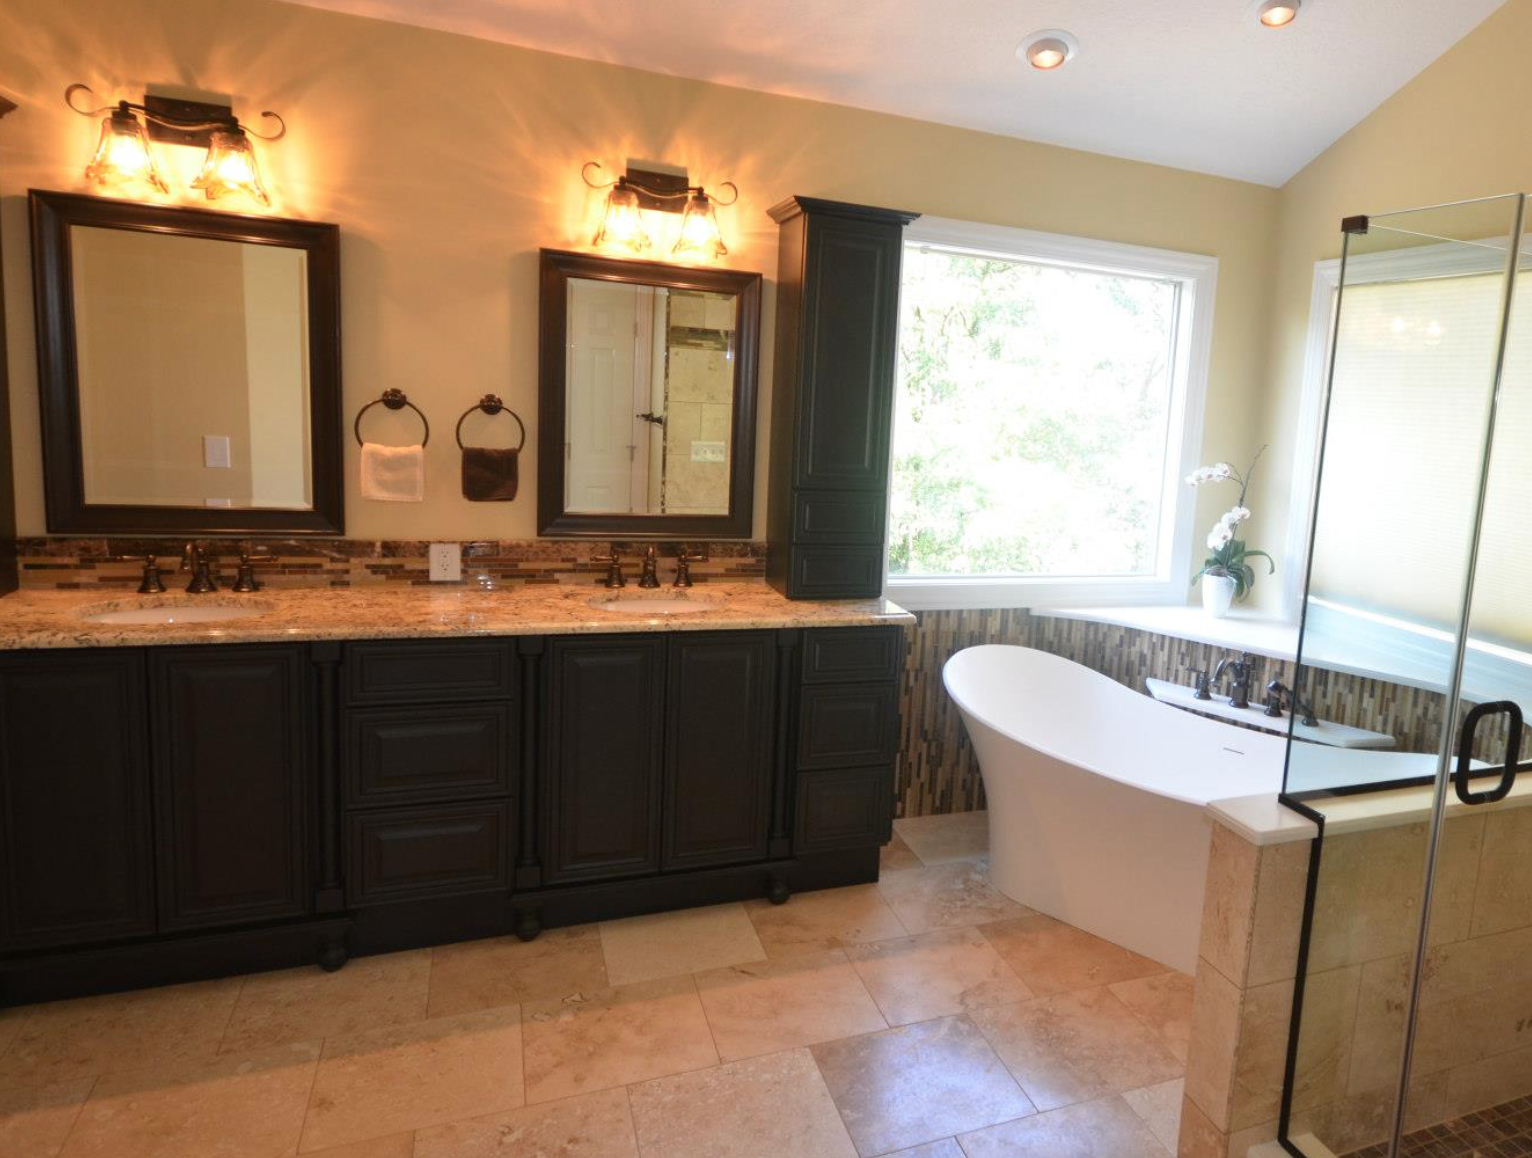 Think Outside The Box When Tackling Bathroom Design Luxury - Bathroom remodel in a box